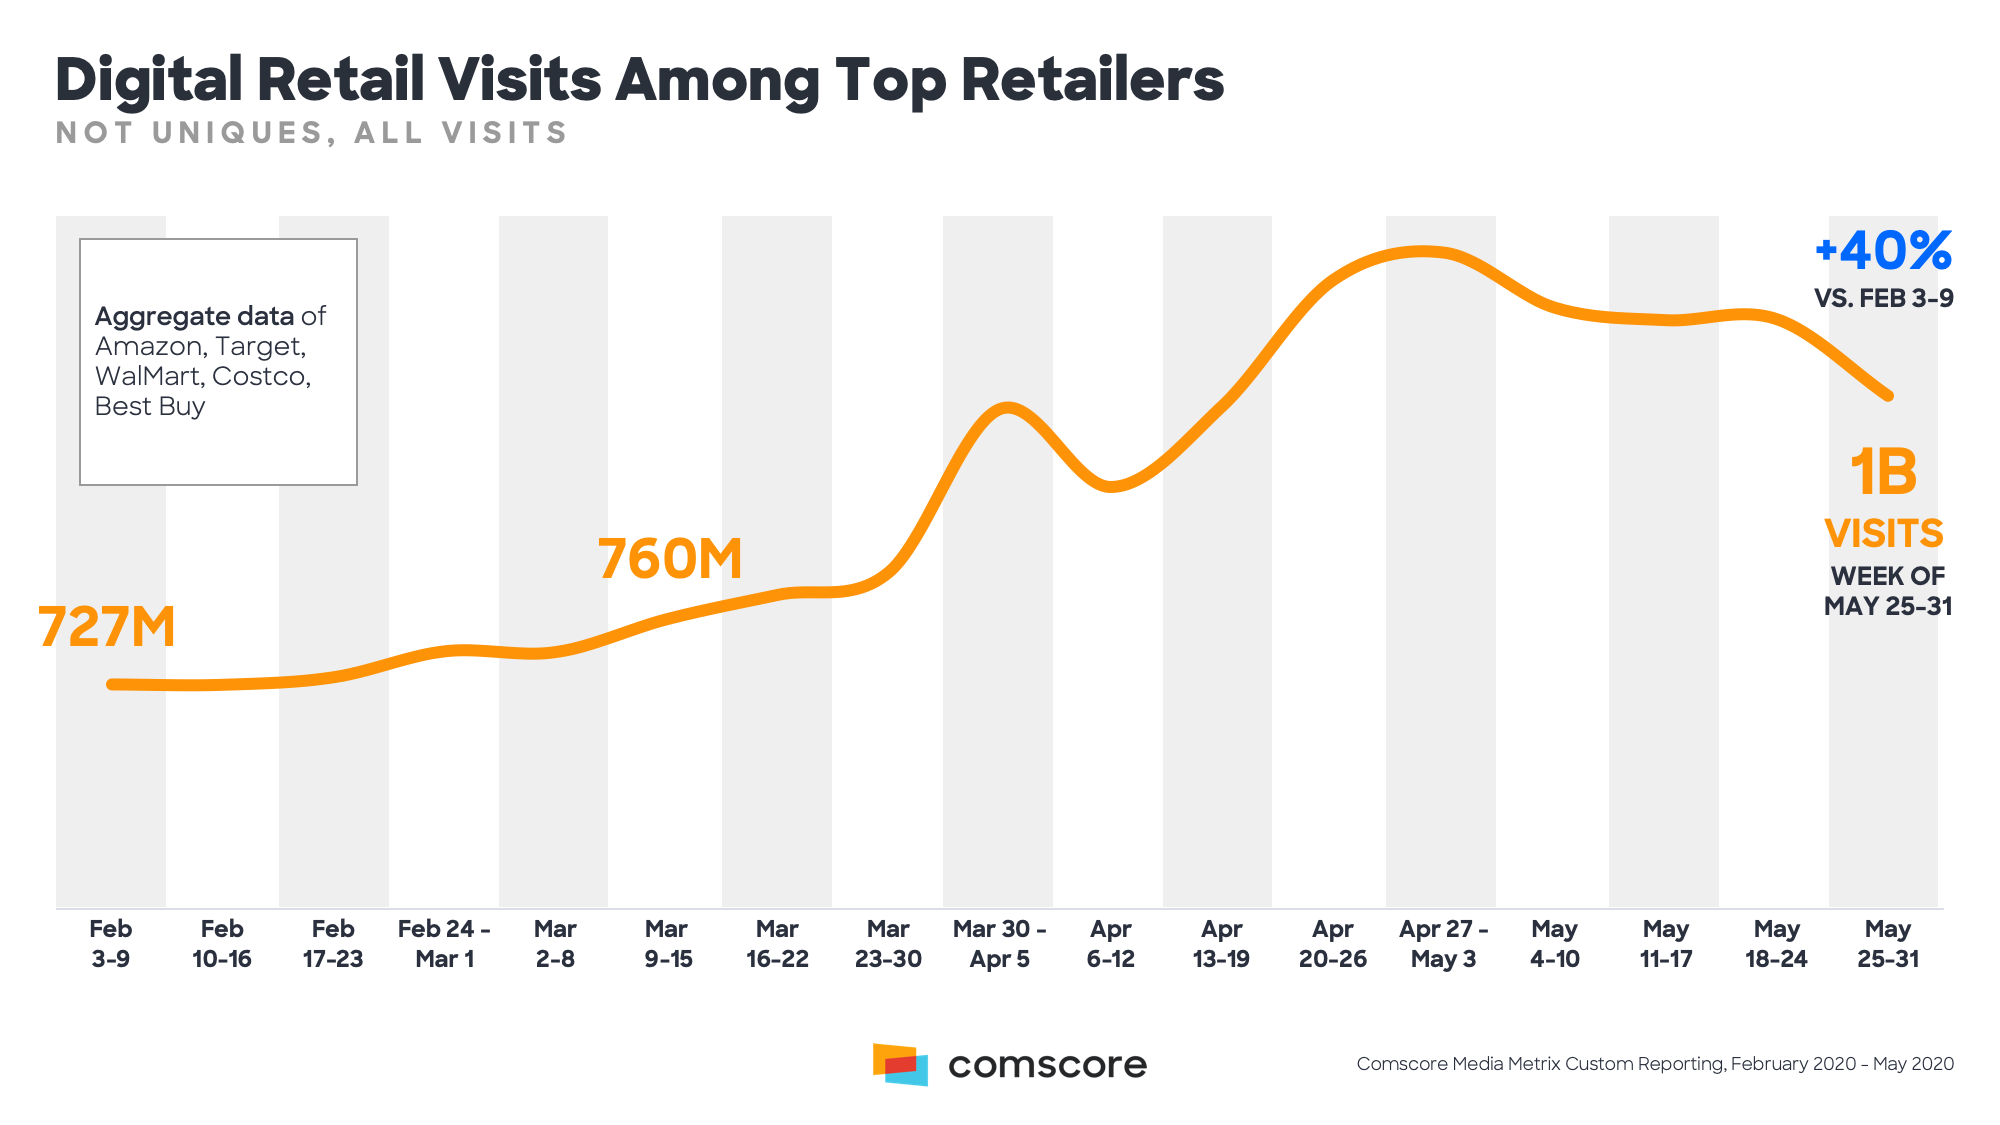 Digital Retail Visits Among Top Retailers